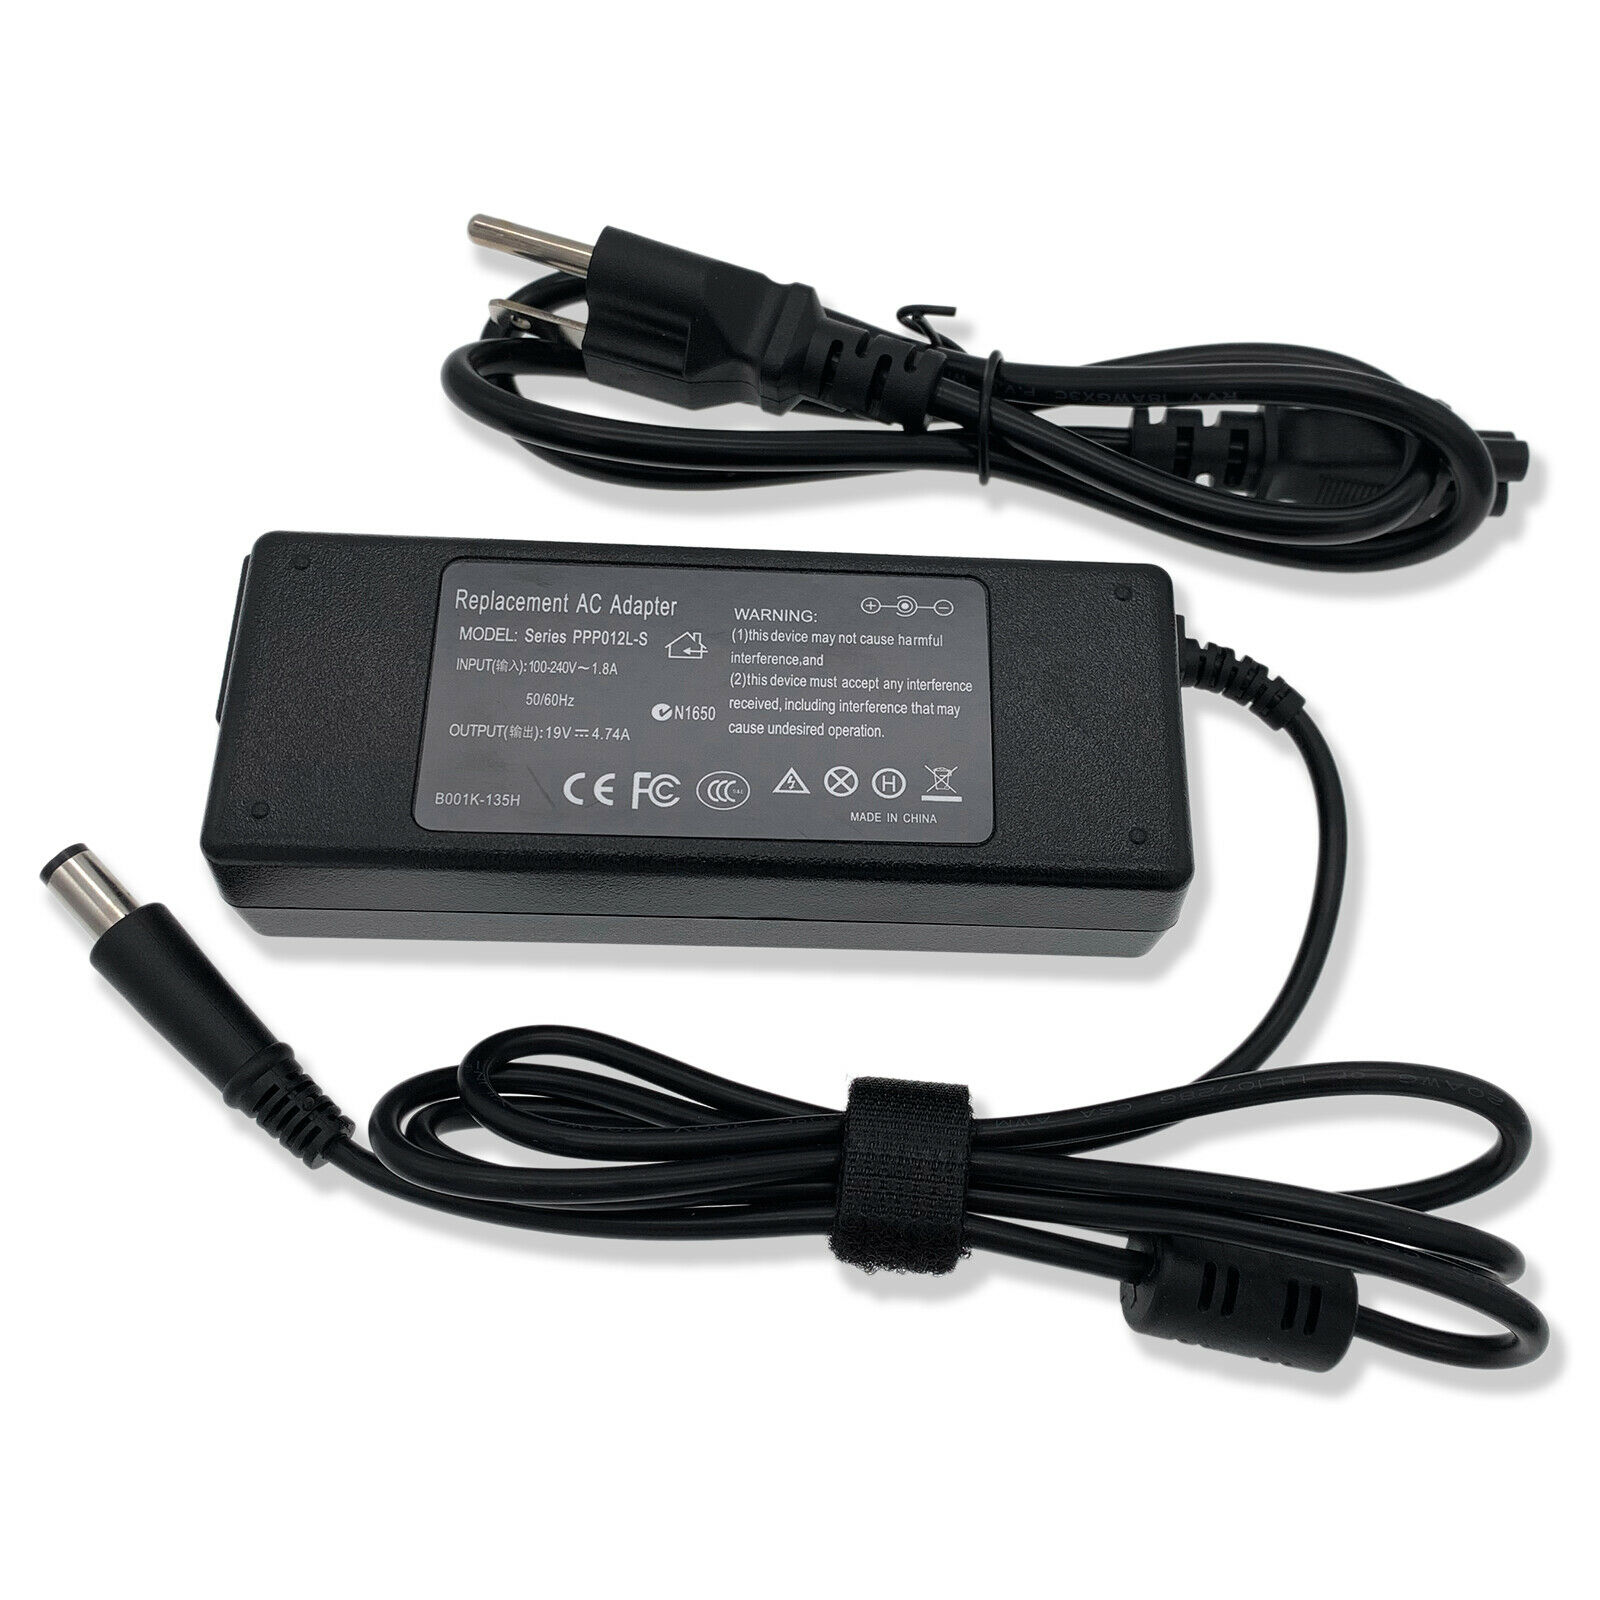 HP Compaq 6450B 4540S 4710S 4440S 6910P 8510 6710B 6710S Laptop Charger AC Adapter Power Supply Cord